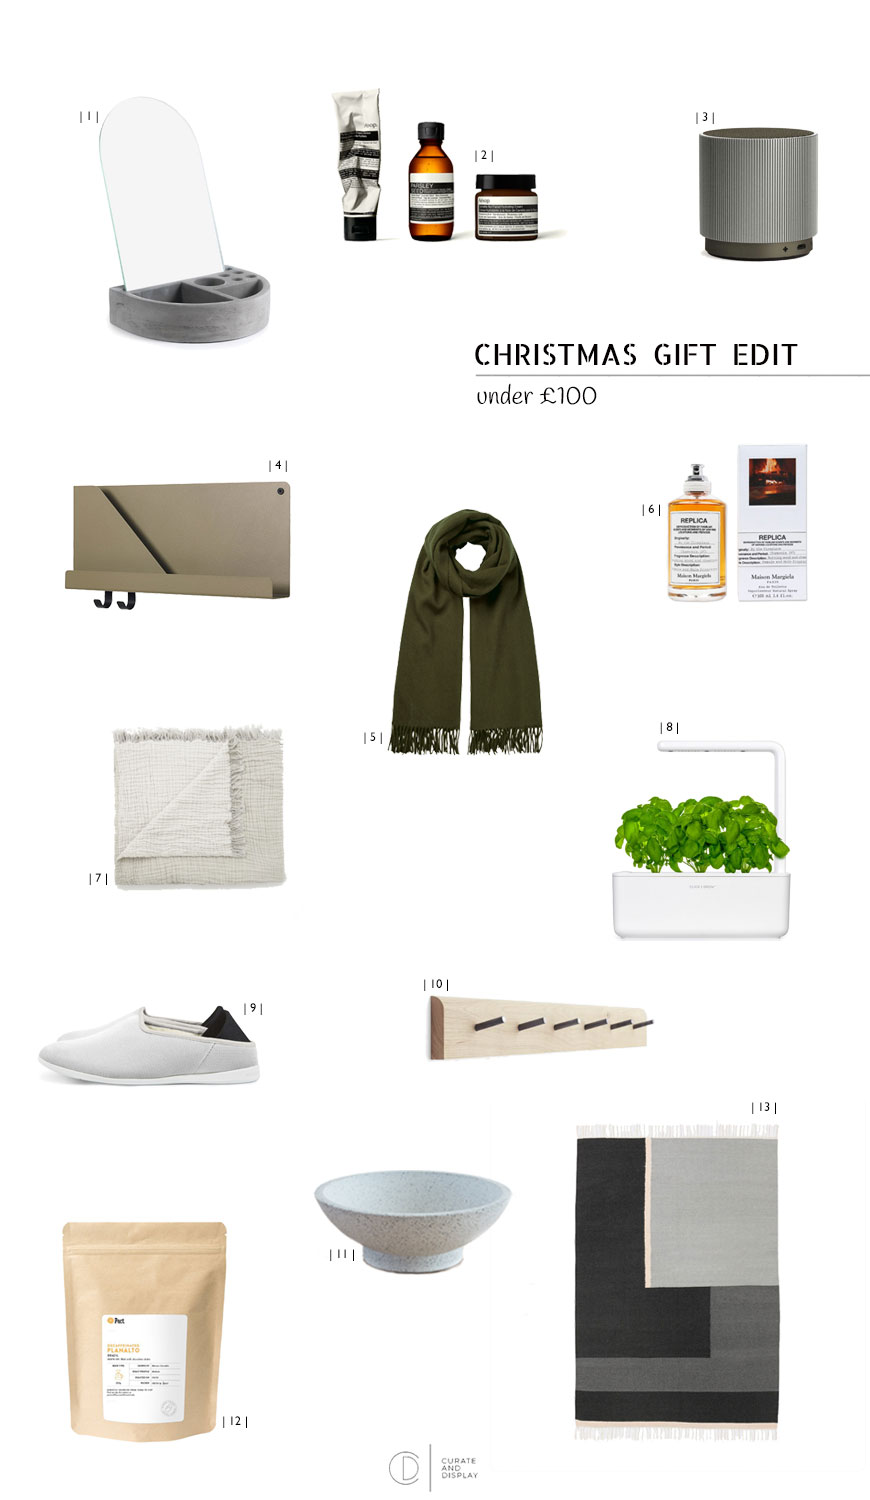 Christmas gift edit, Christmas gift guide, Christmas gifts under £100, gift guide.